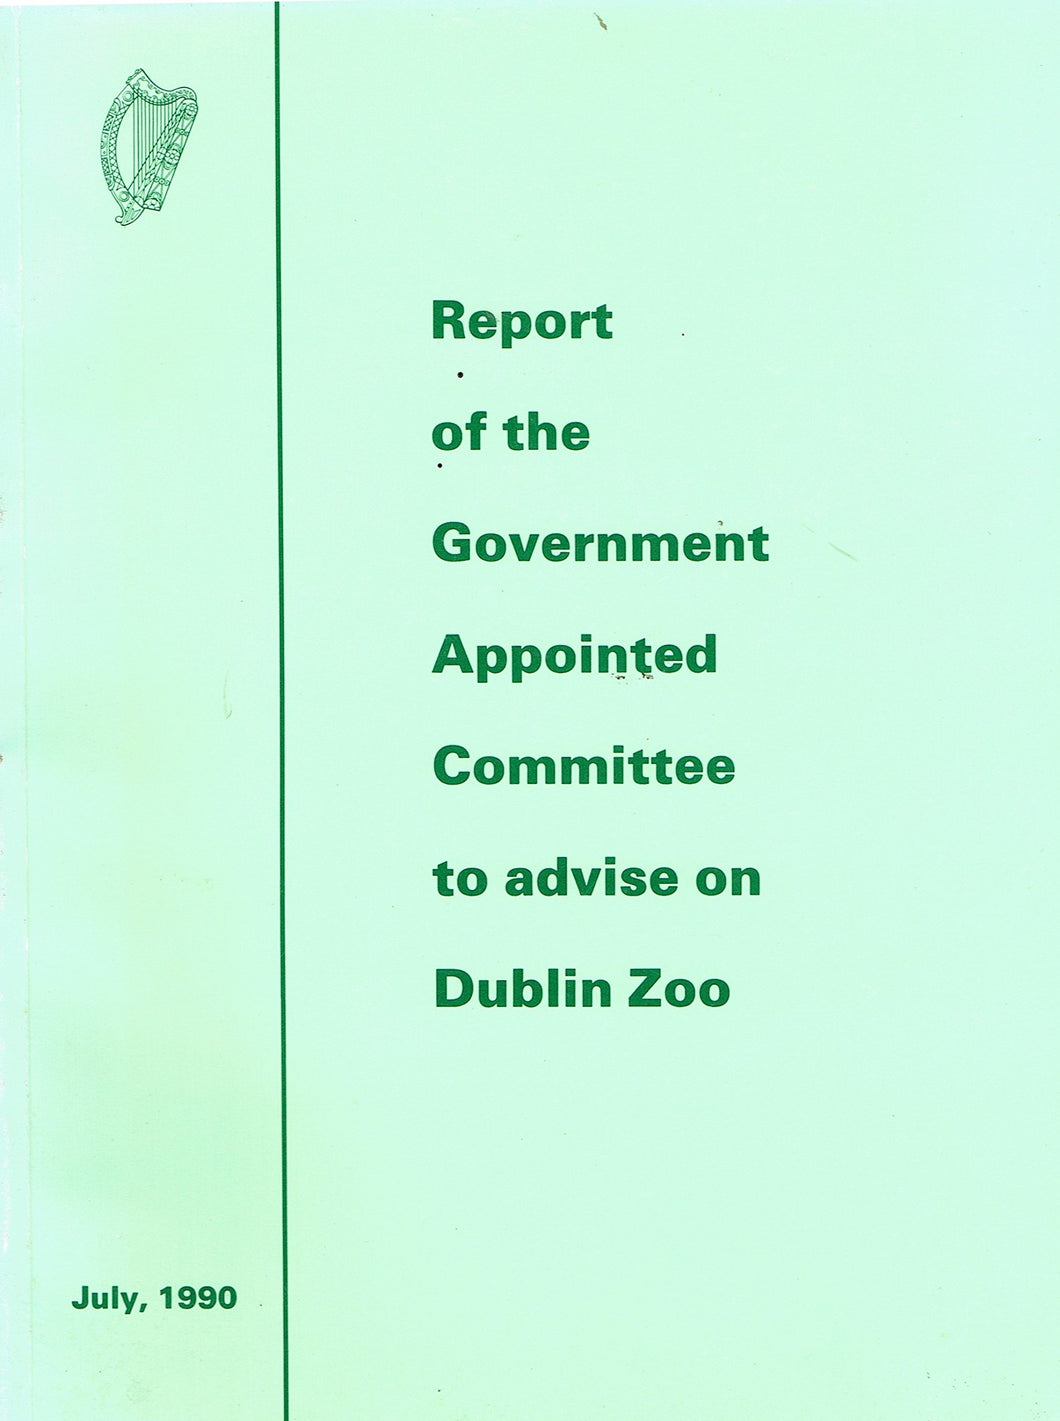 Report of the Government Appointed Committee to Advise on Dublin Zoo